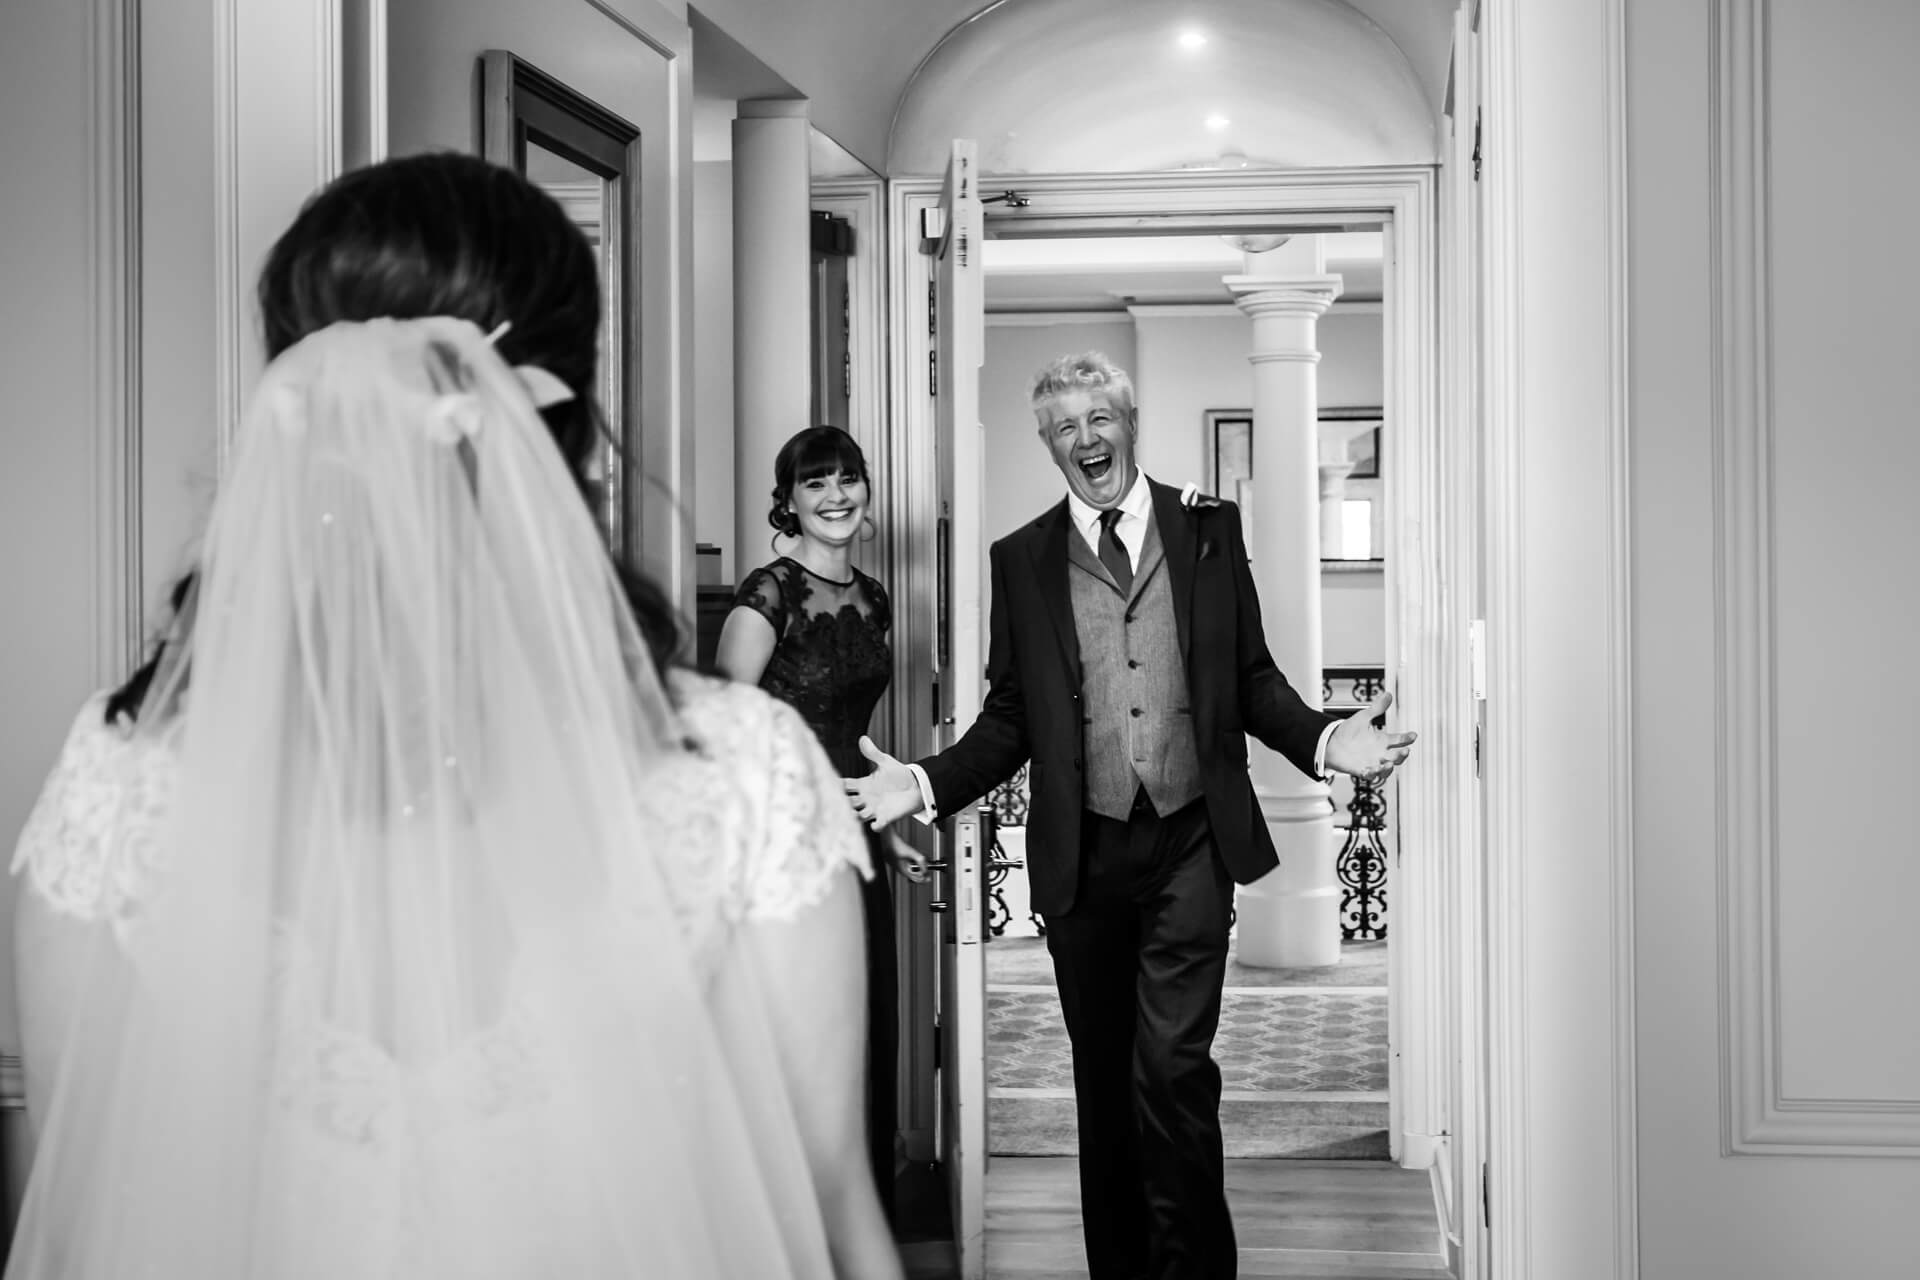 father of the bride smiling as he sees the bride for the first time